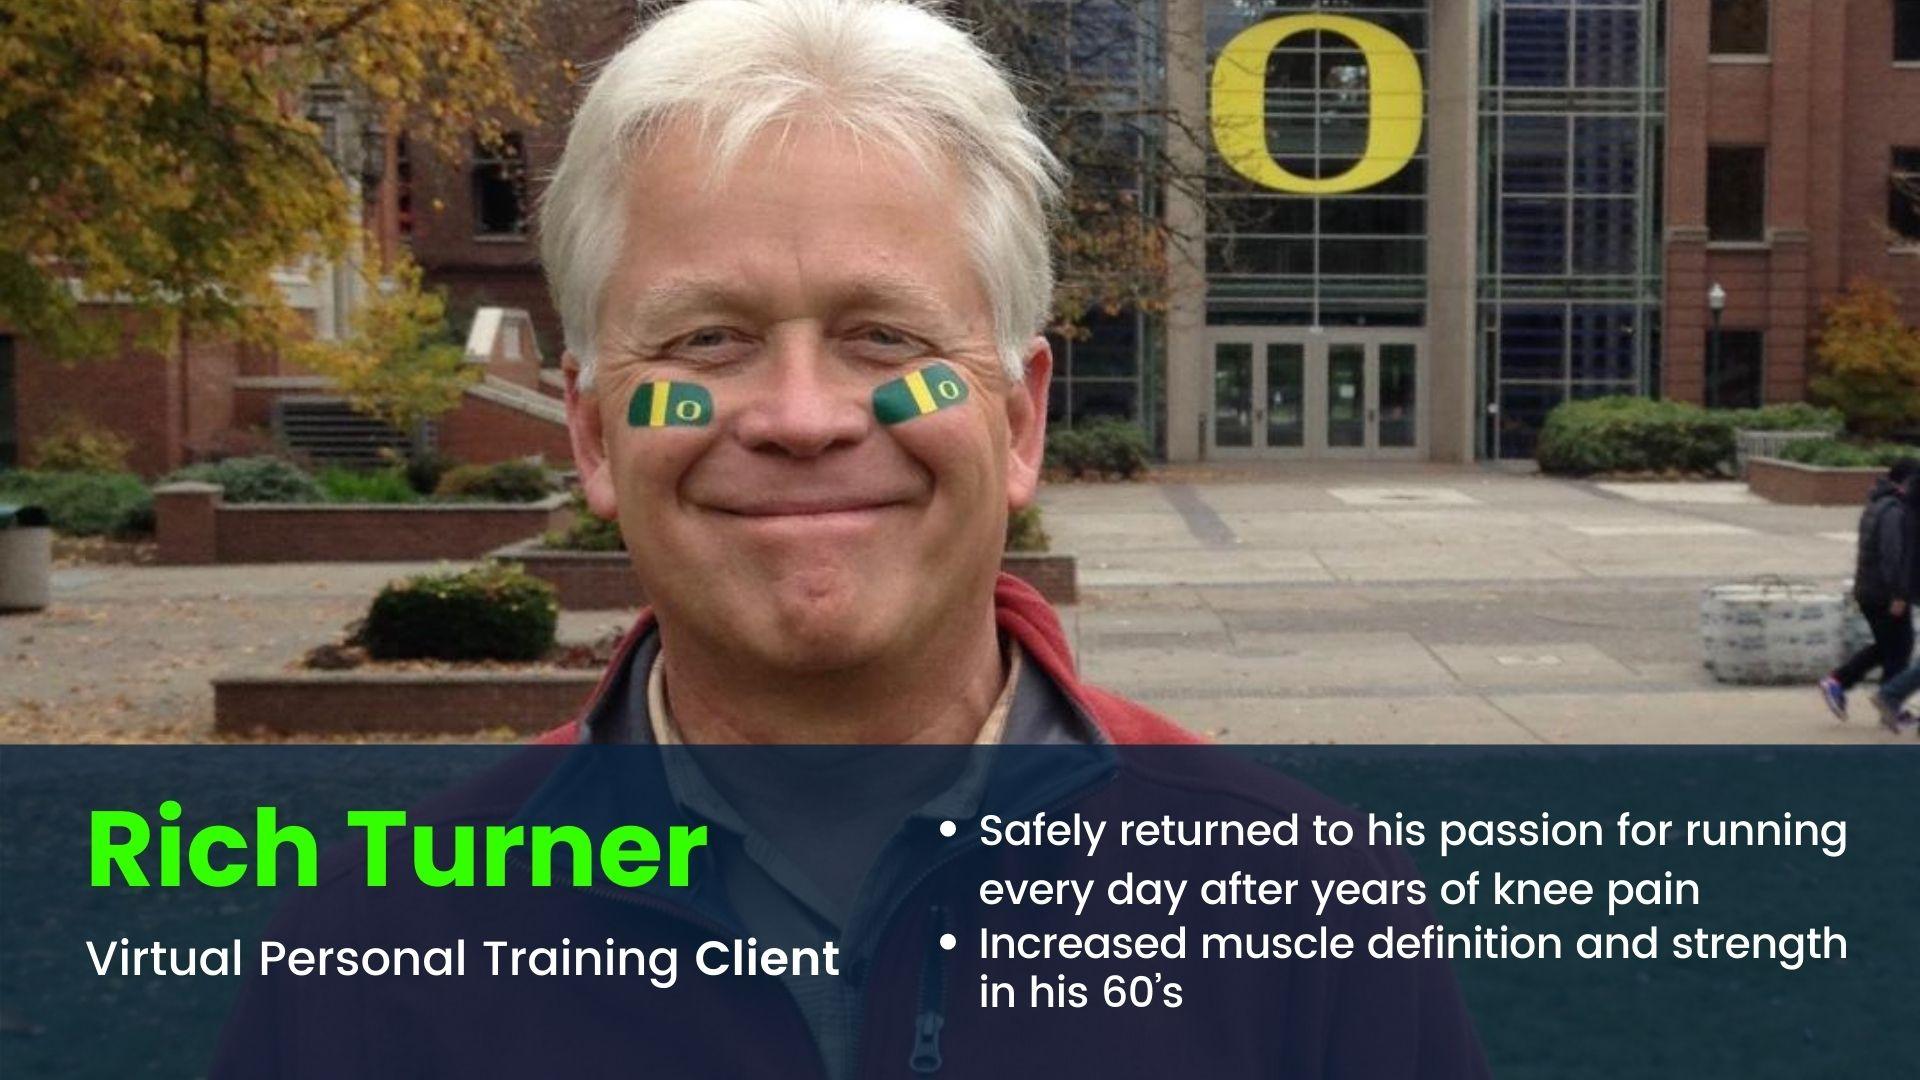 Client increased strength in his 60's with 1-on-1 personal training